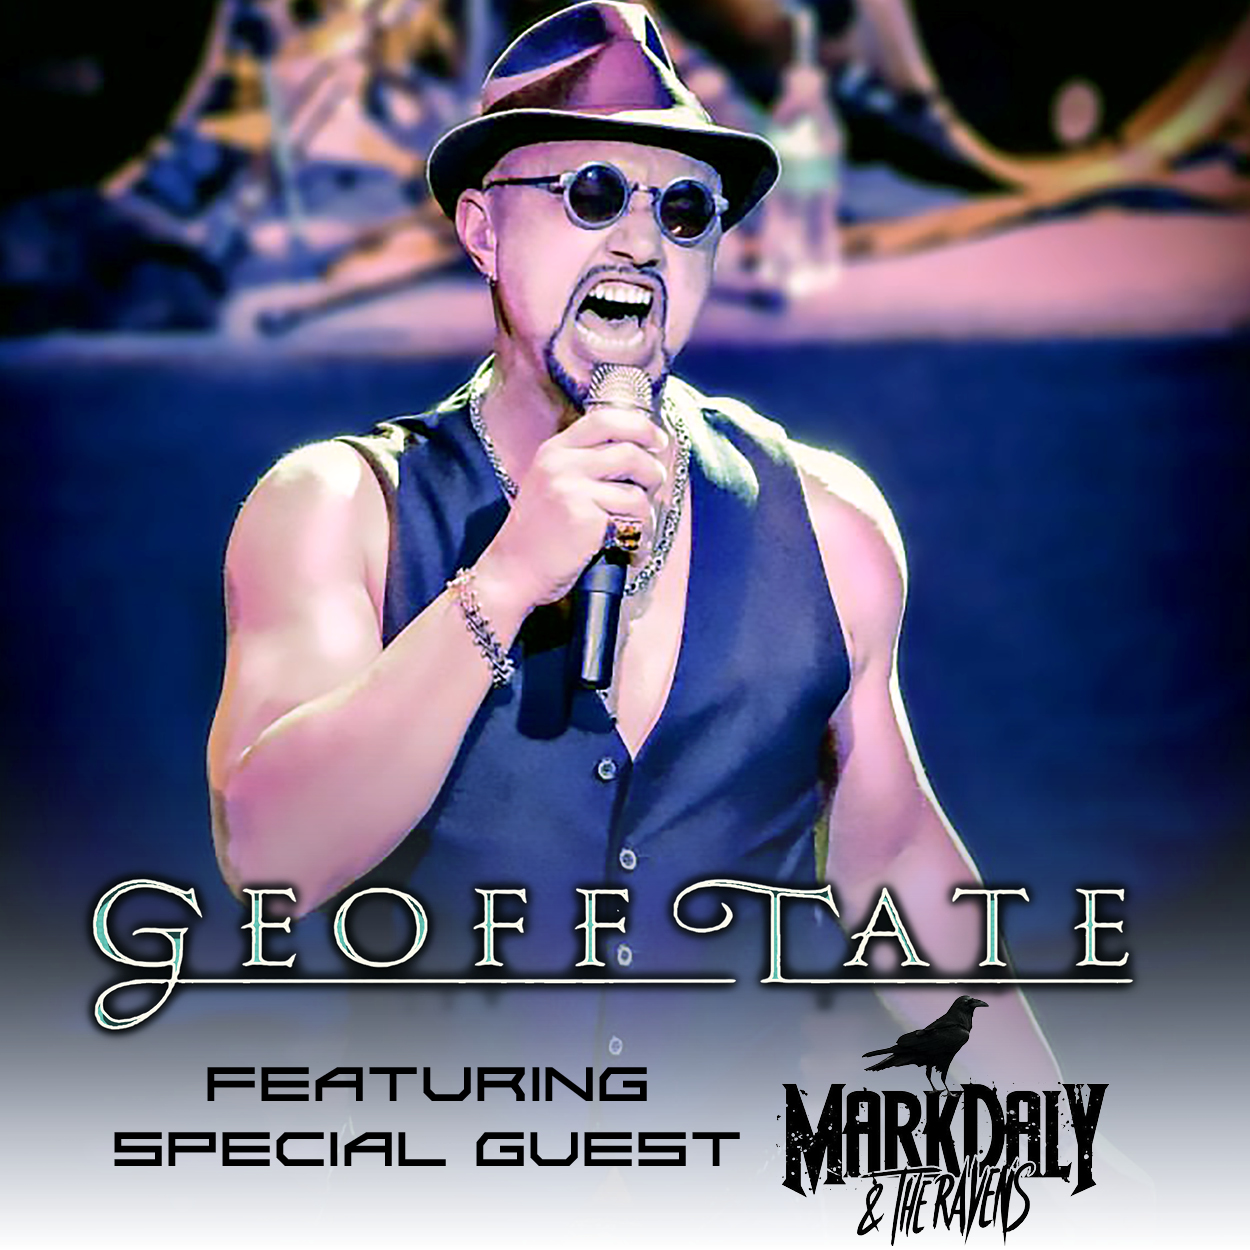 Geoff Tate – 30th Anniversary of Empire featuring special guests Mark Daly & The Ravens